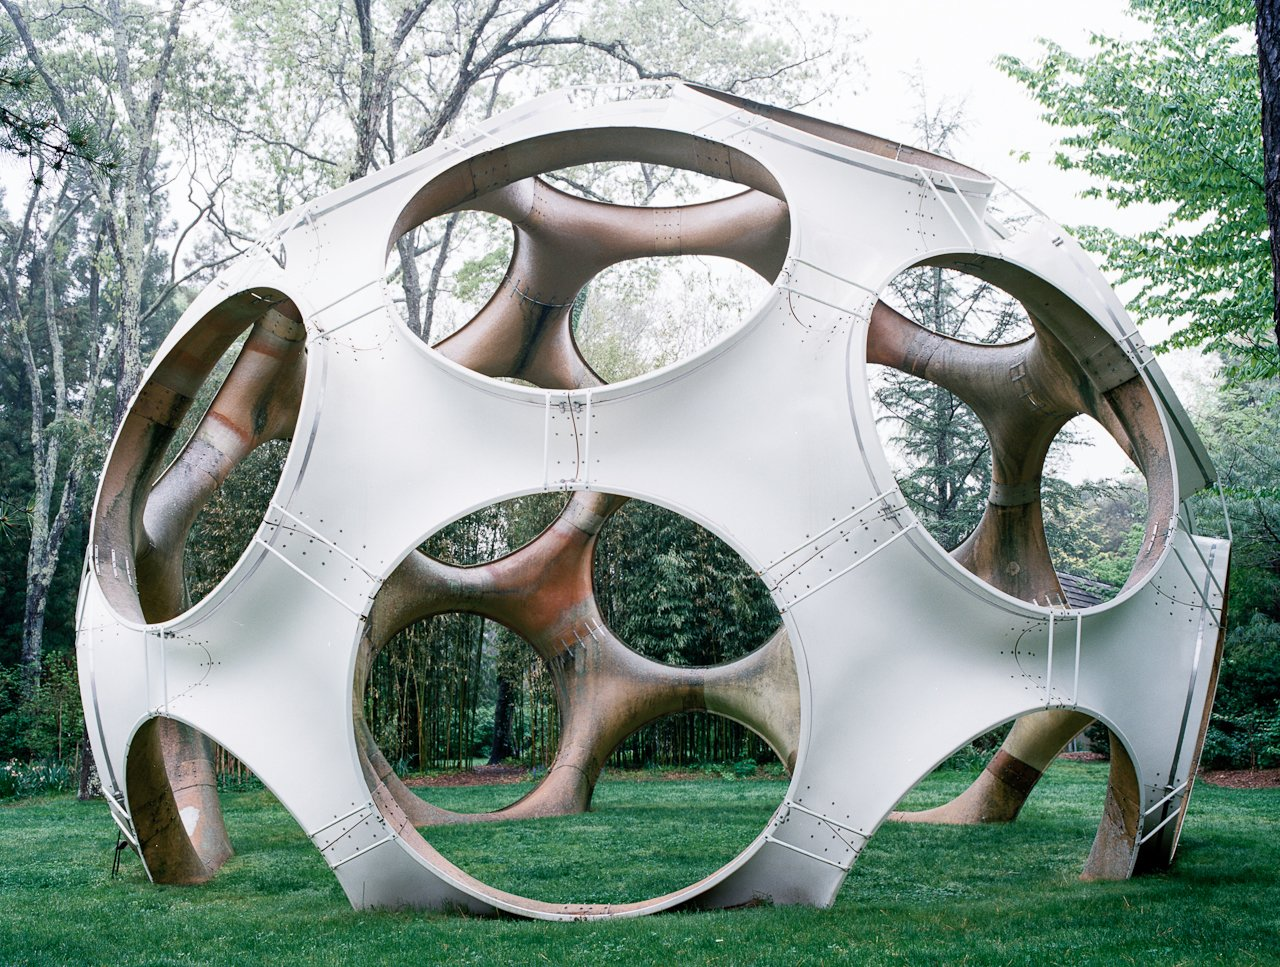 On the second lawn at LongHouse Reserve sits Fly's Eye Dome, fabricated out of fiberglass in 1998 designed by John Kuhtik from a Buckminster Fuller design. Q&A with Textile Designer Jack Lenor Larsen - Photo 9 of 12